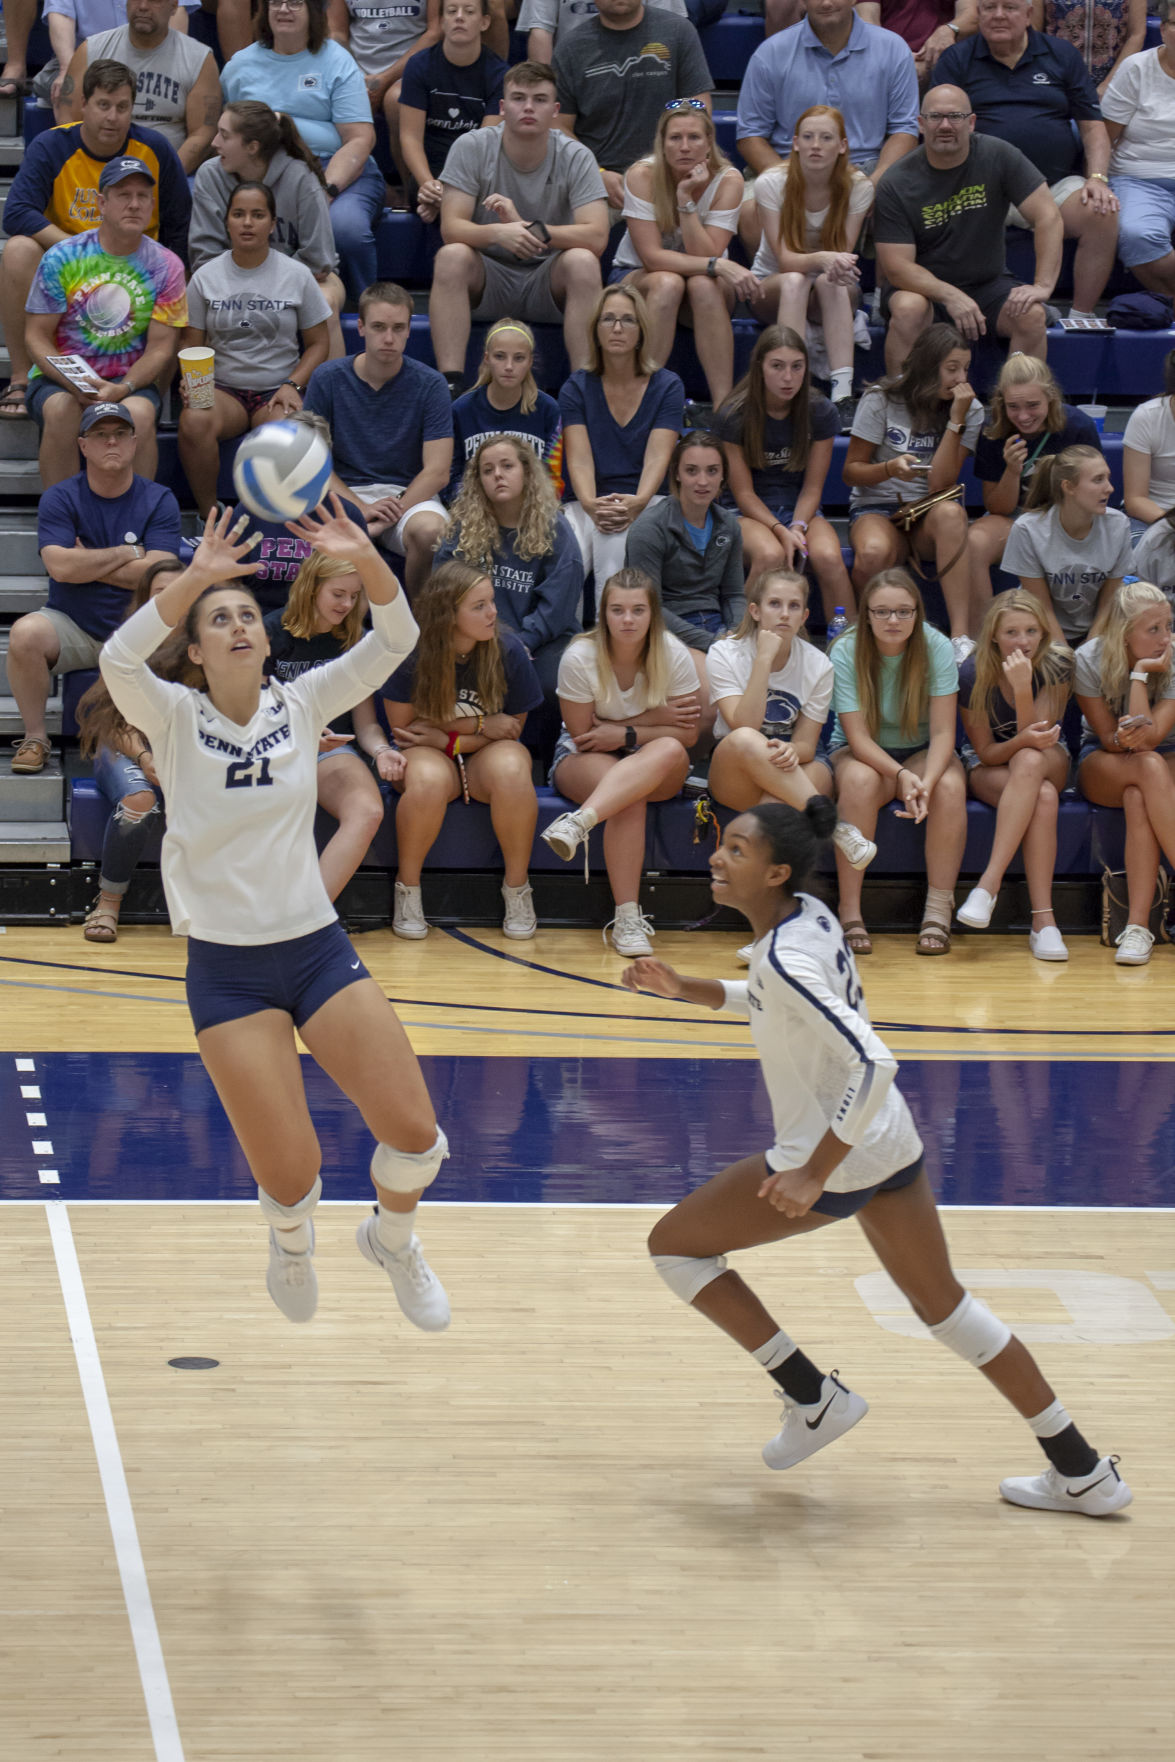 penn state women's volleyball should focus on the bright spots